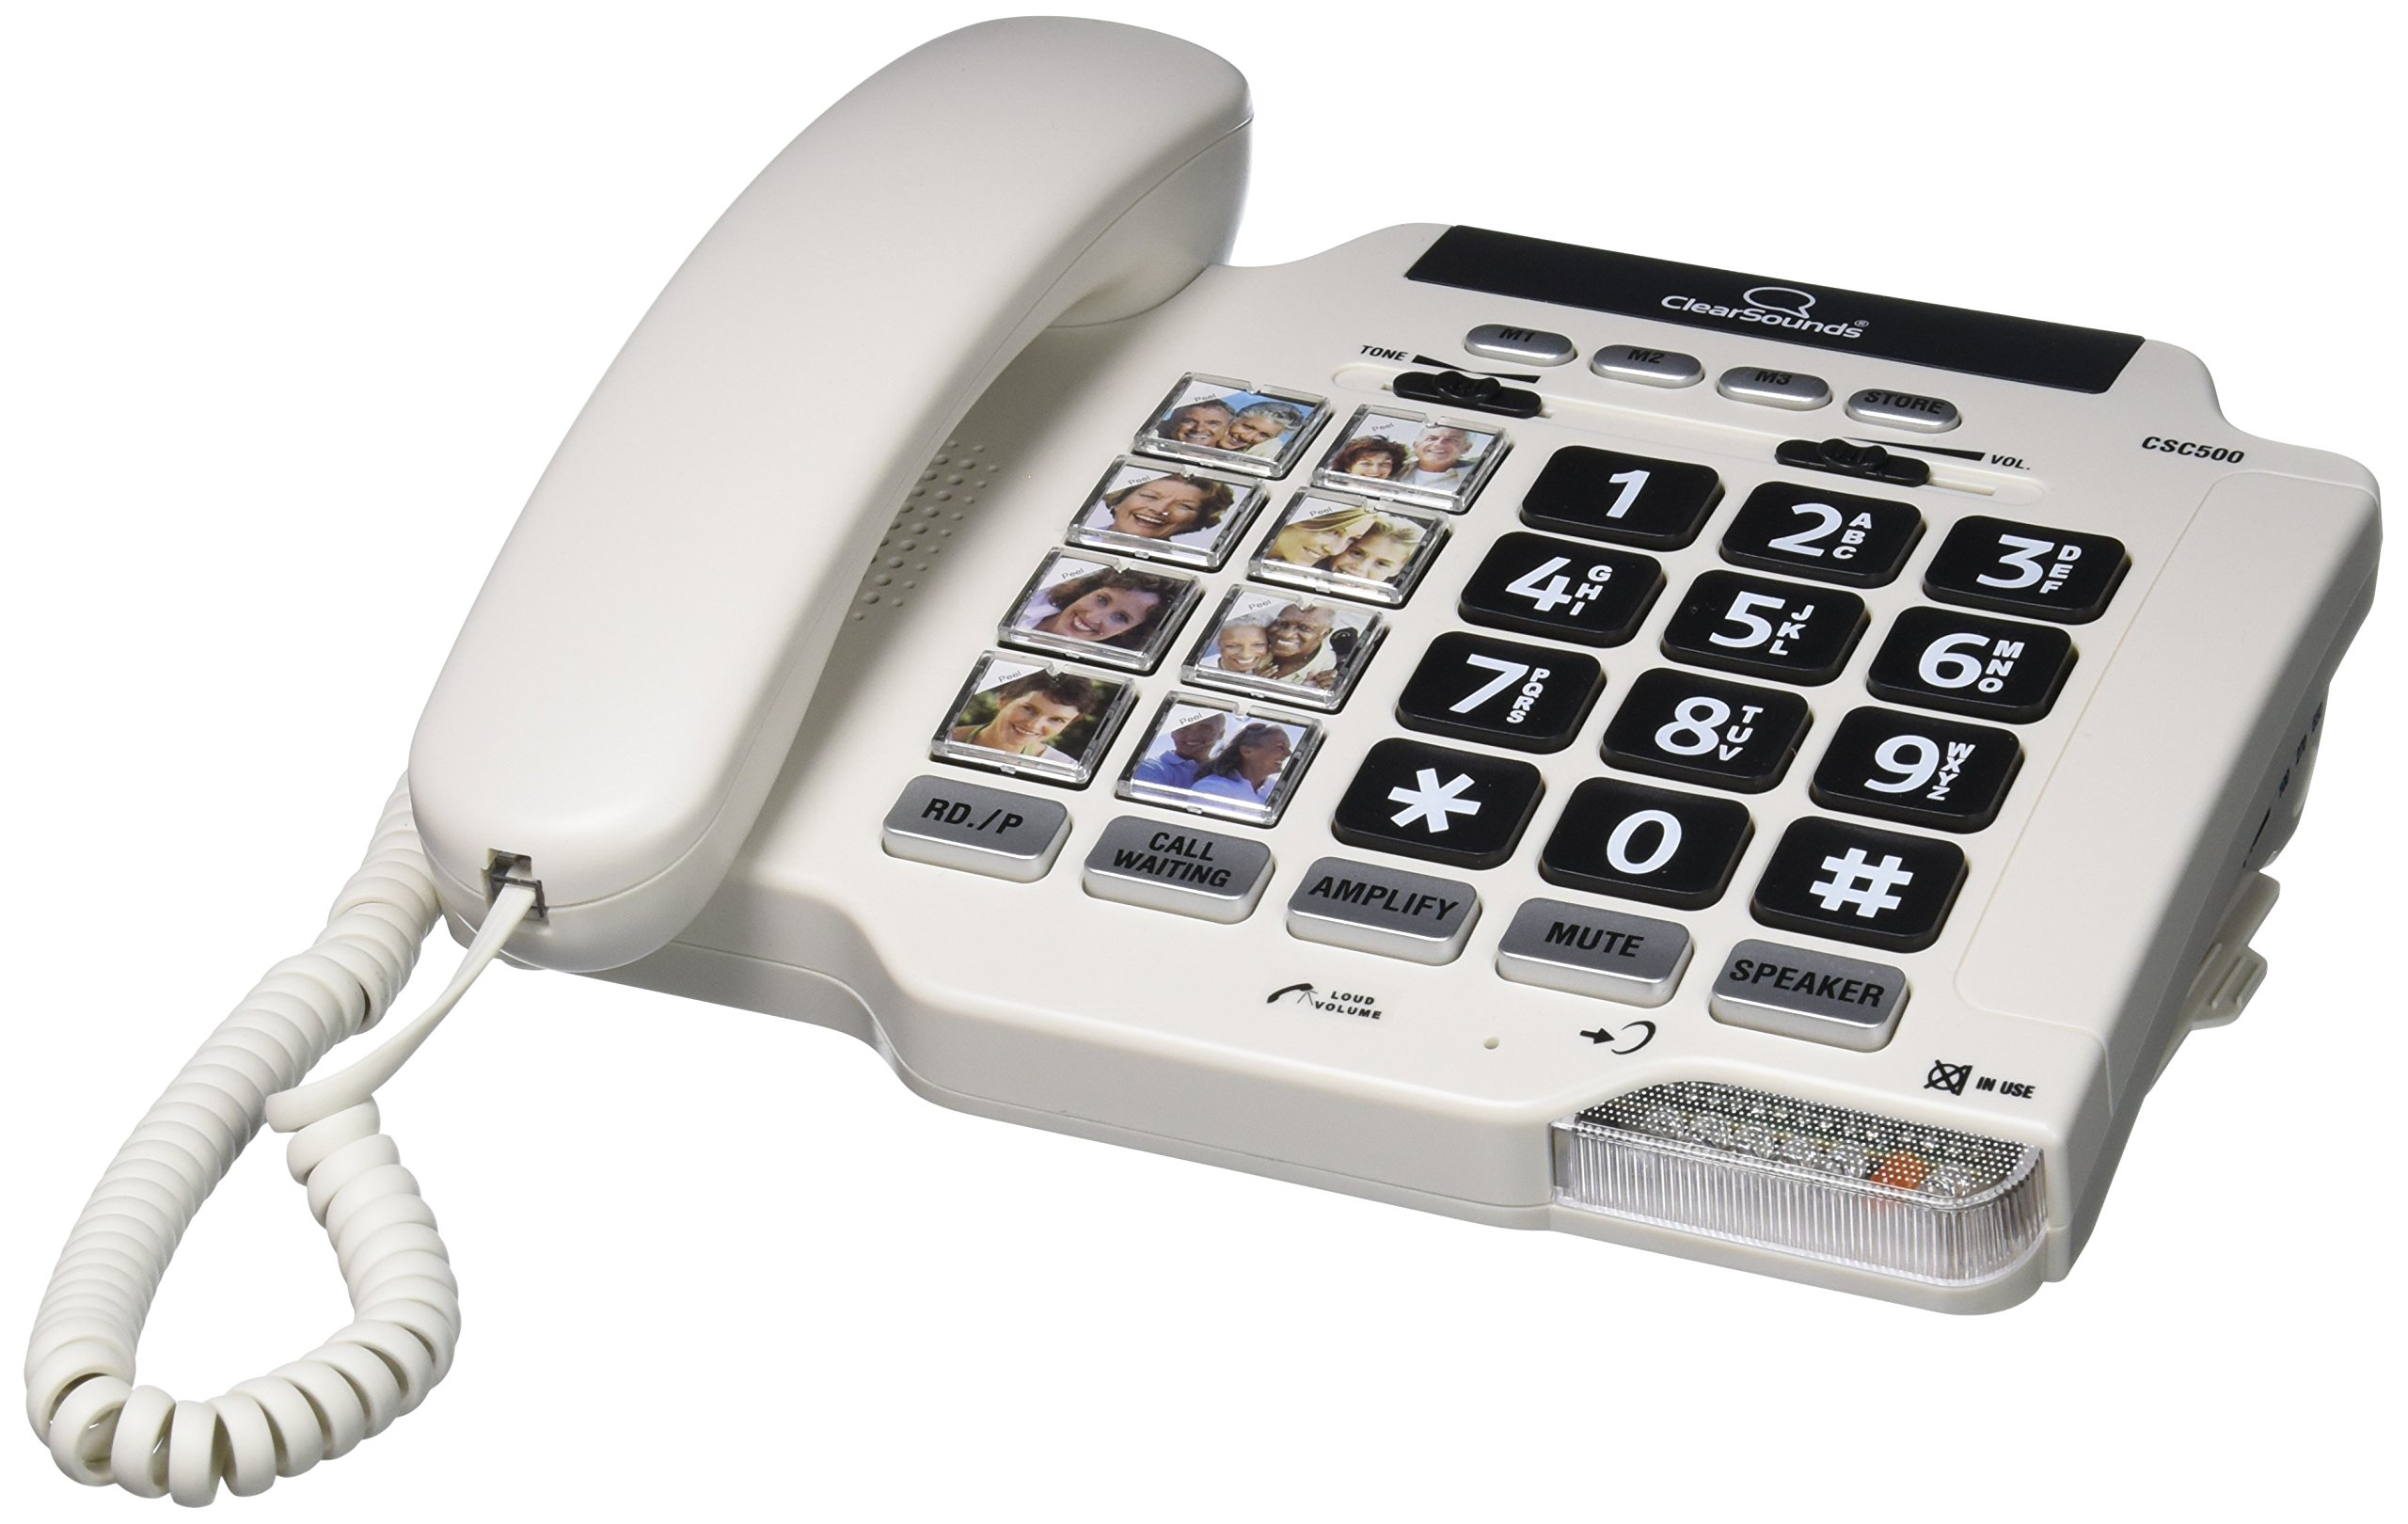 ClearSounds CSCSC500 Amplified Landline Telephone with Speakerphone and Photo Frame Buttons - White